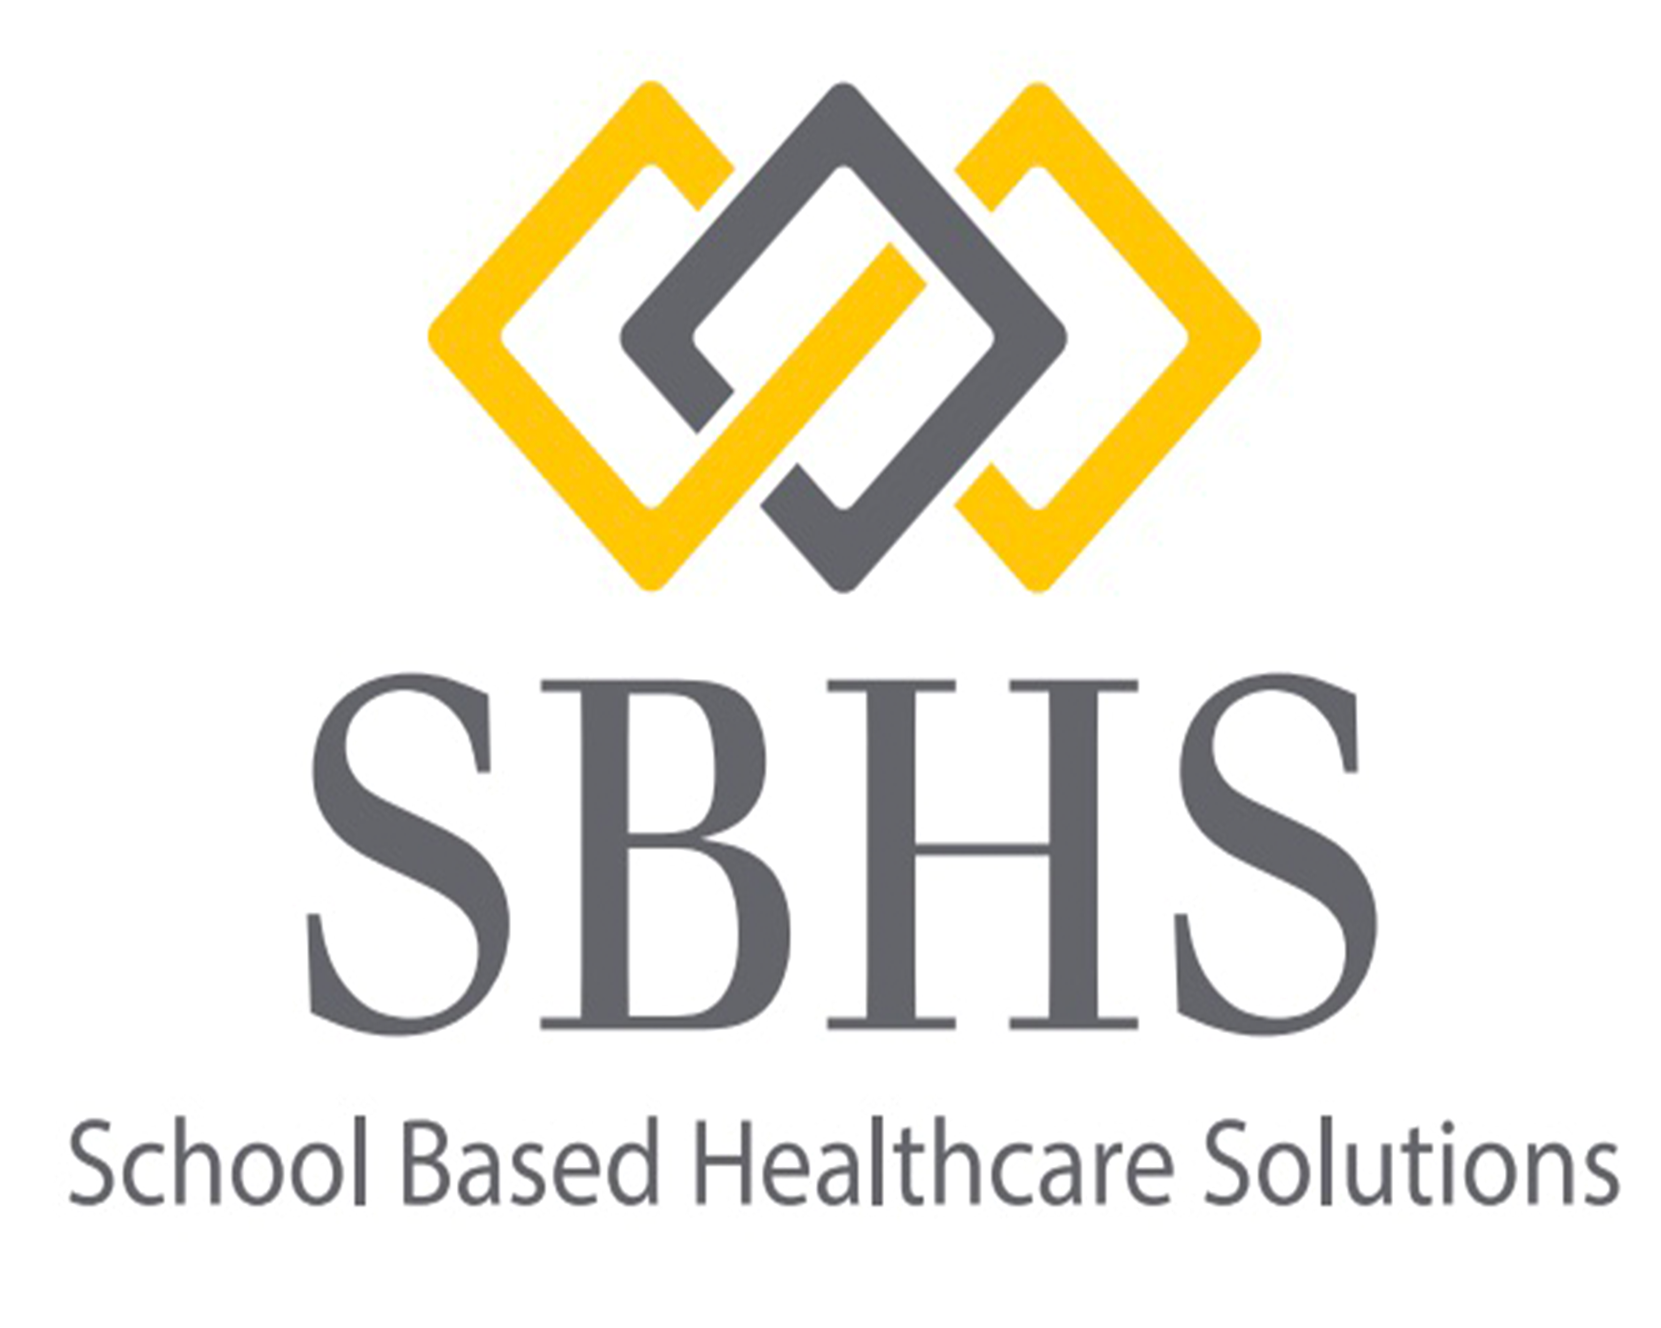 LMSV Awarded SBHSN's COVID-19 Student Support Recovery Grant